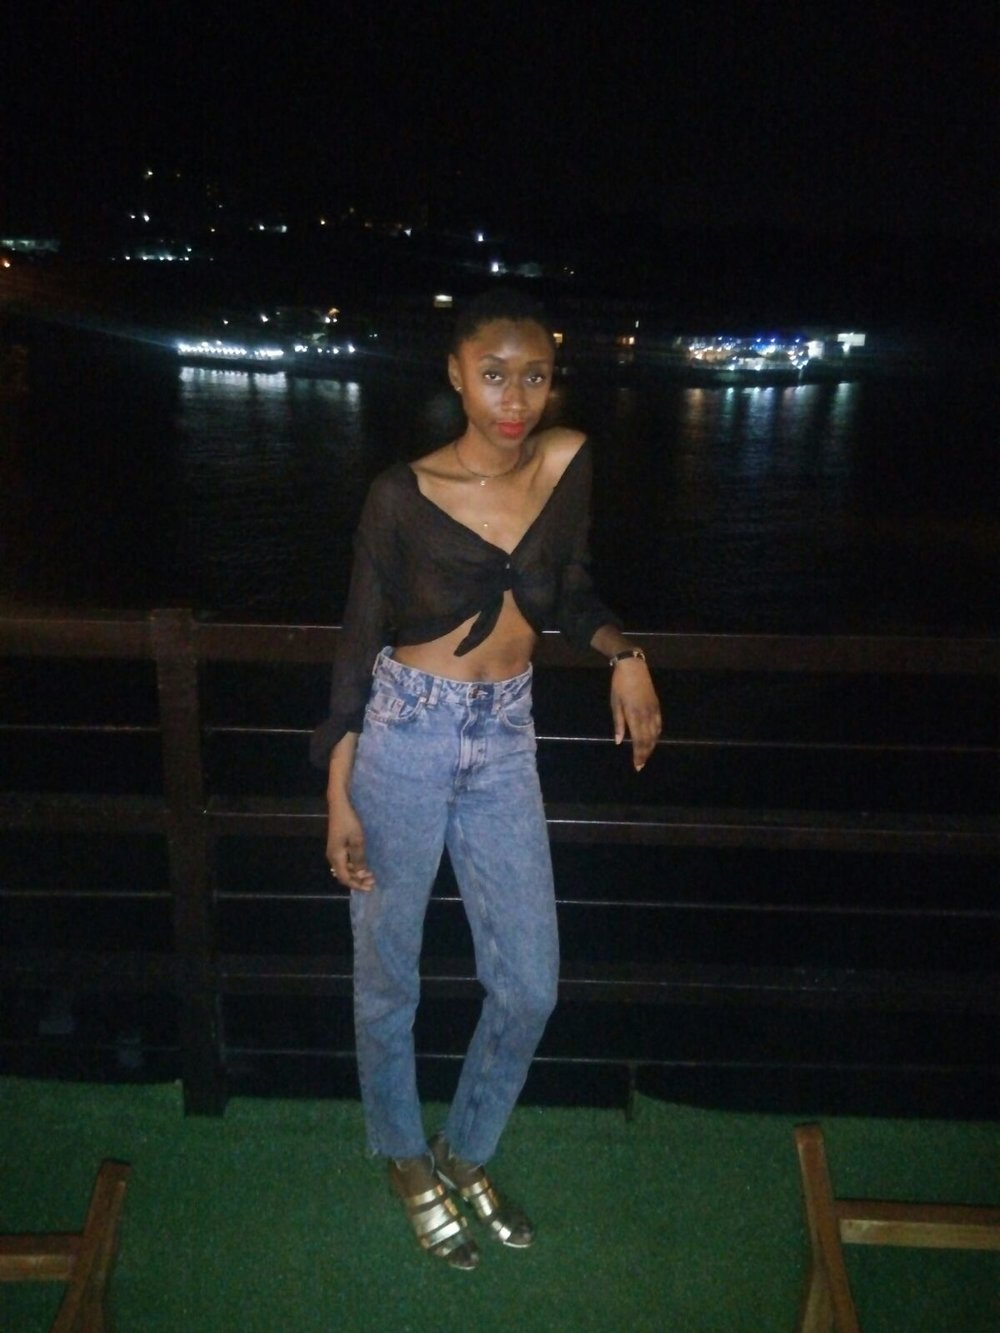 Casino Nights in Freetown, SL - Black Sheer button down Express top thrifted, Cigarette mid-rise cut acid wash denim jeans H&M, Gold leather strappy sandal Loeffler Randall, Fenty red lip stain